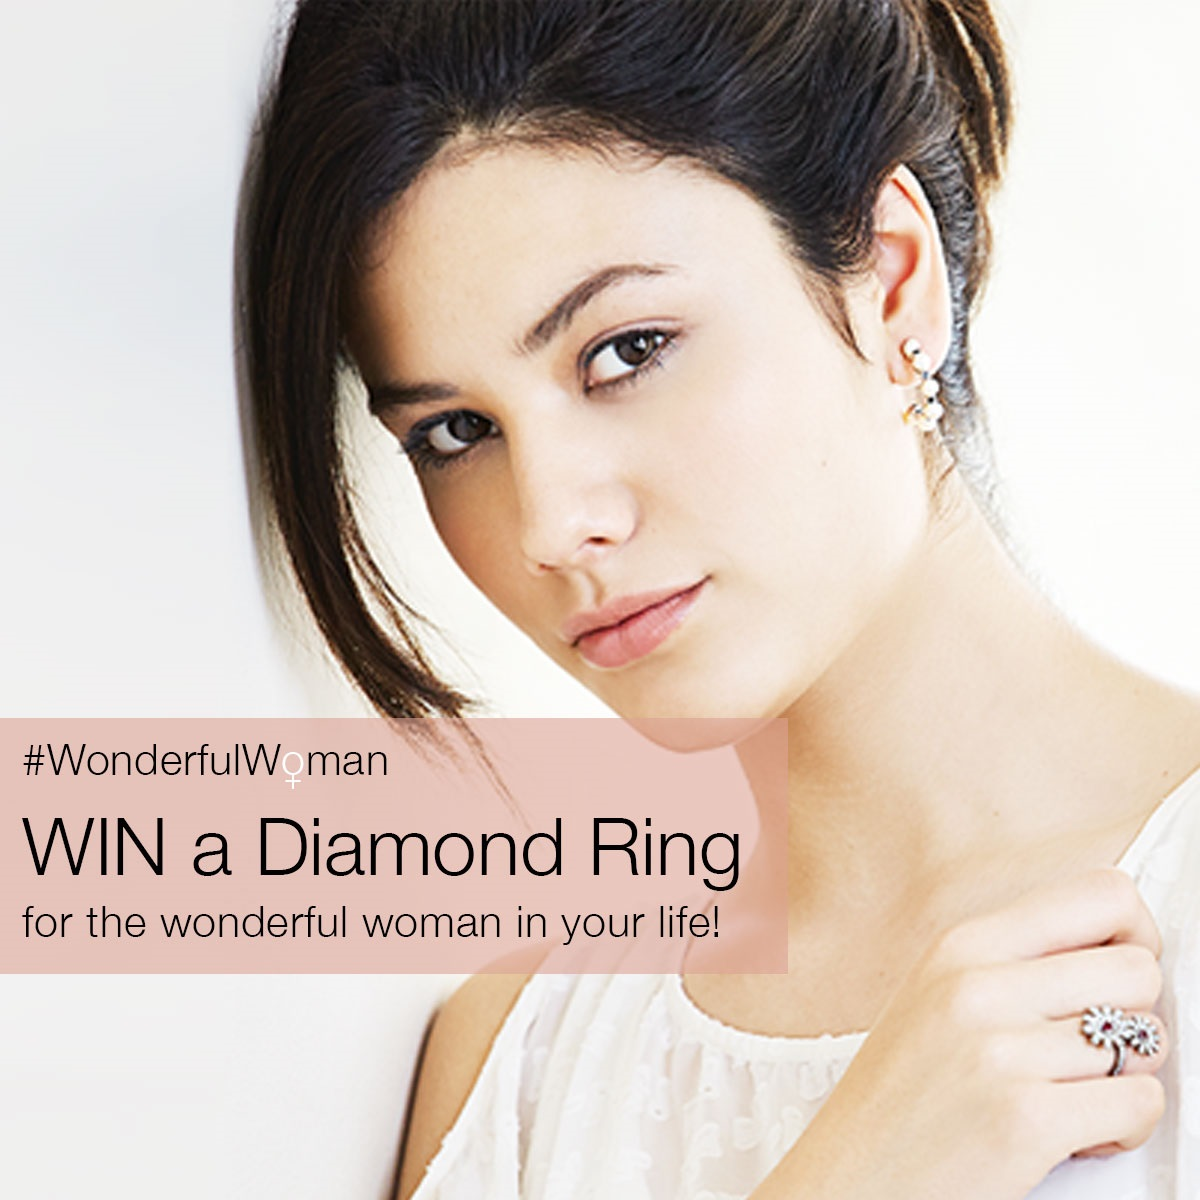 Win a Diamond Ring Everyday!